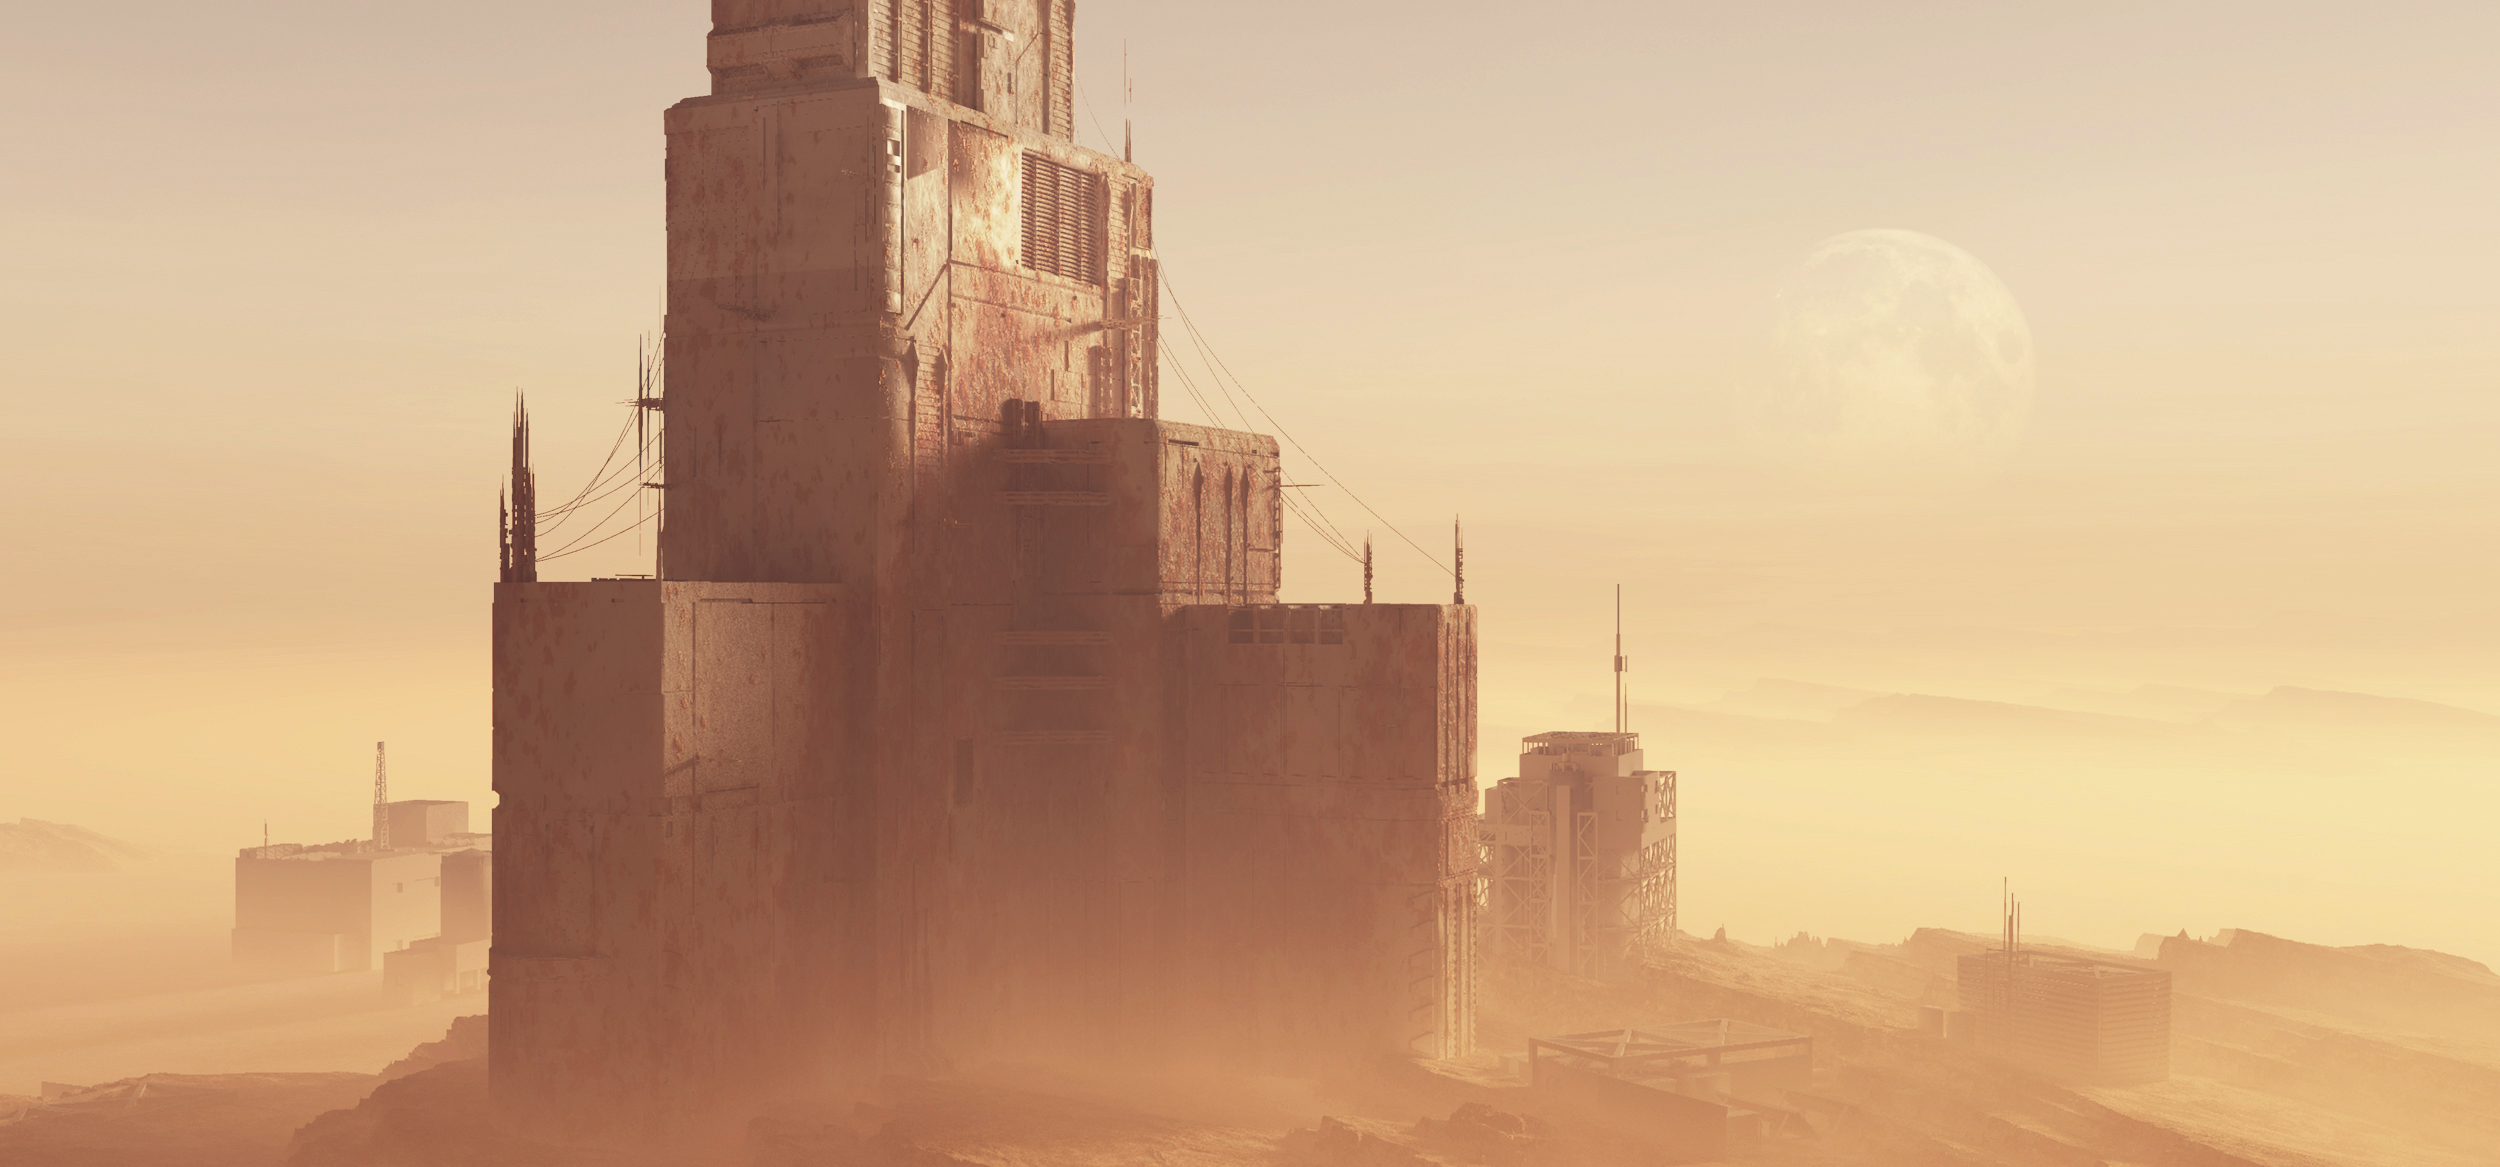 Sci Fi environment. in 3d max vray 3.0 image